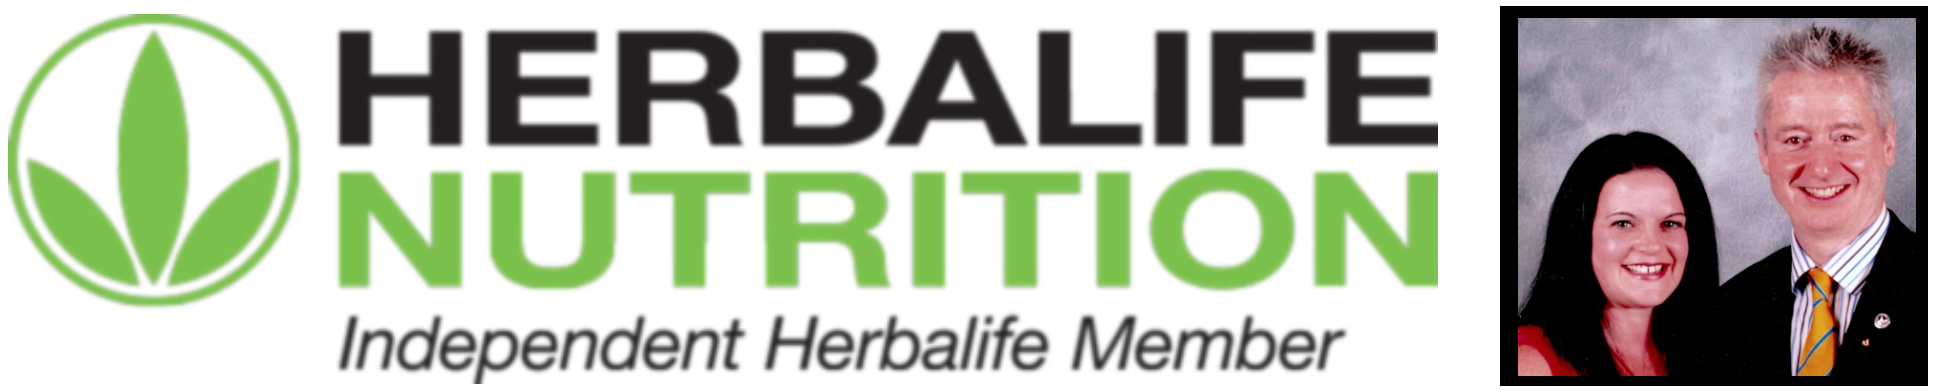 Herbal Nutrition for Life - Paul & Beccy Hopfensperger - Herbalife Independent Members since 1987